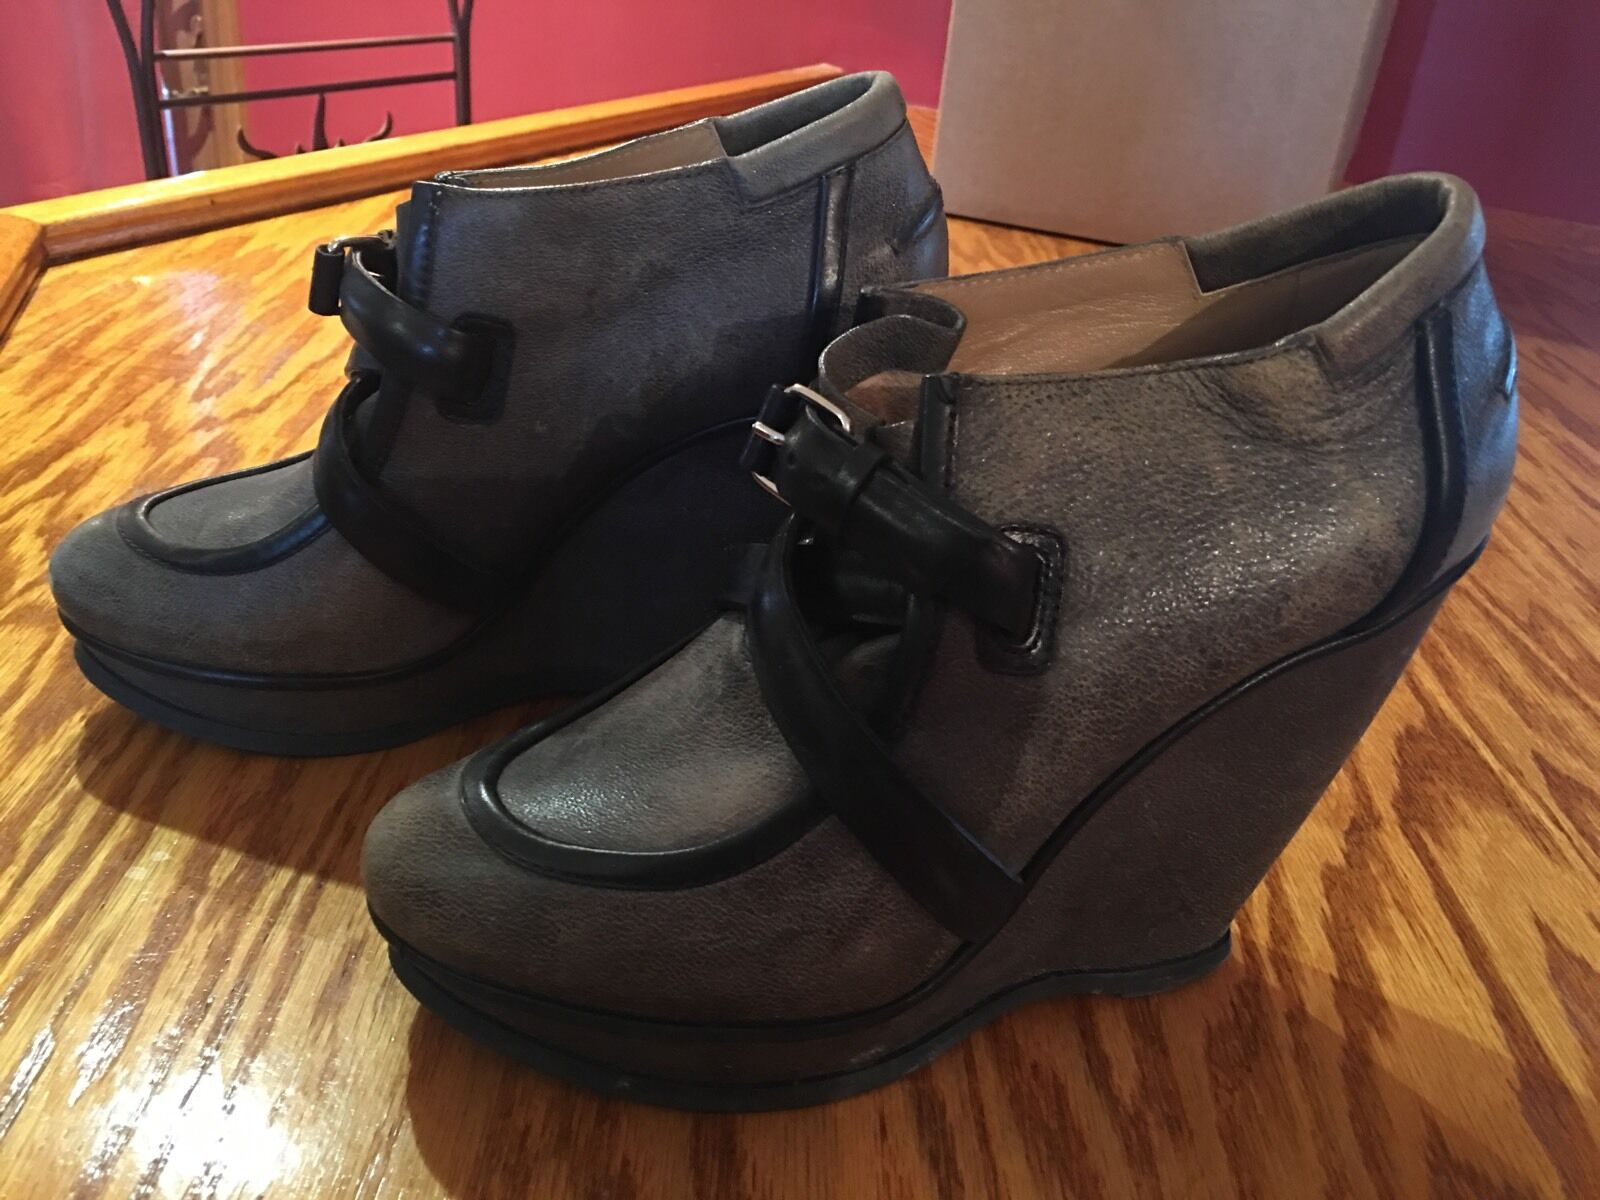 Men's/Women's Balenciaga Skilled Booties Size 40 Authentic Packaging diversity Skilled Balenciaga manufacturing TRUE 973eb1